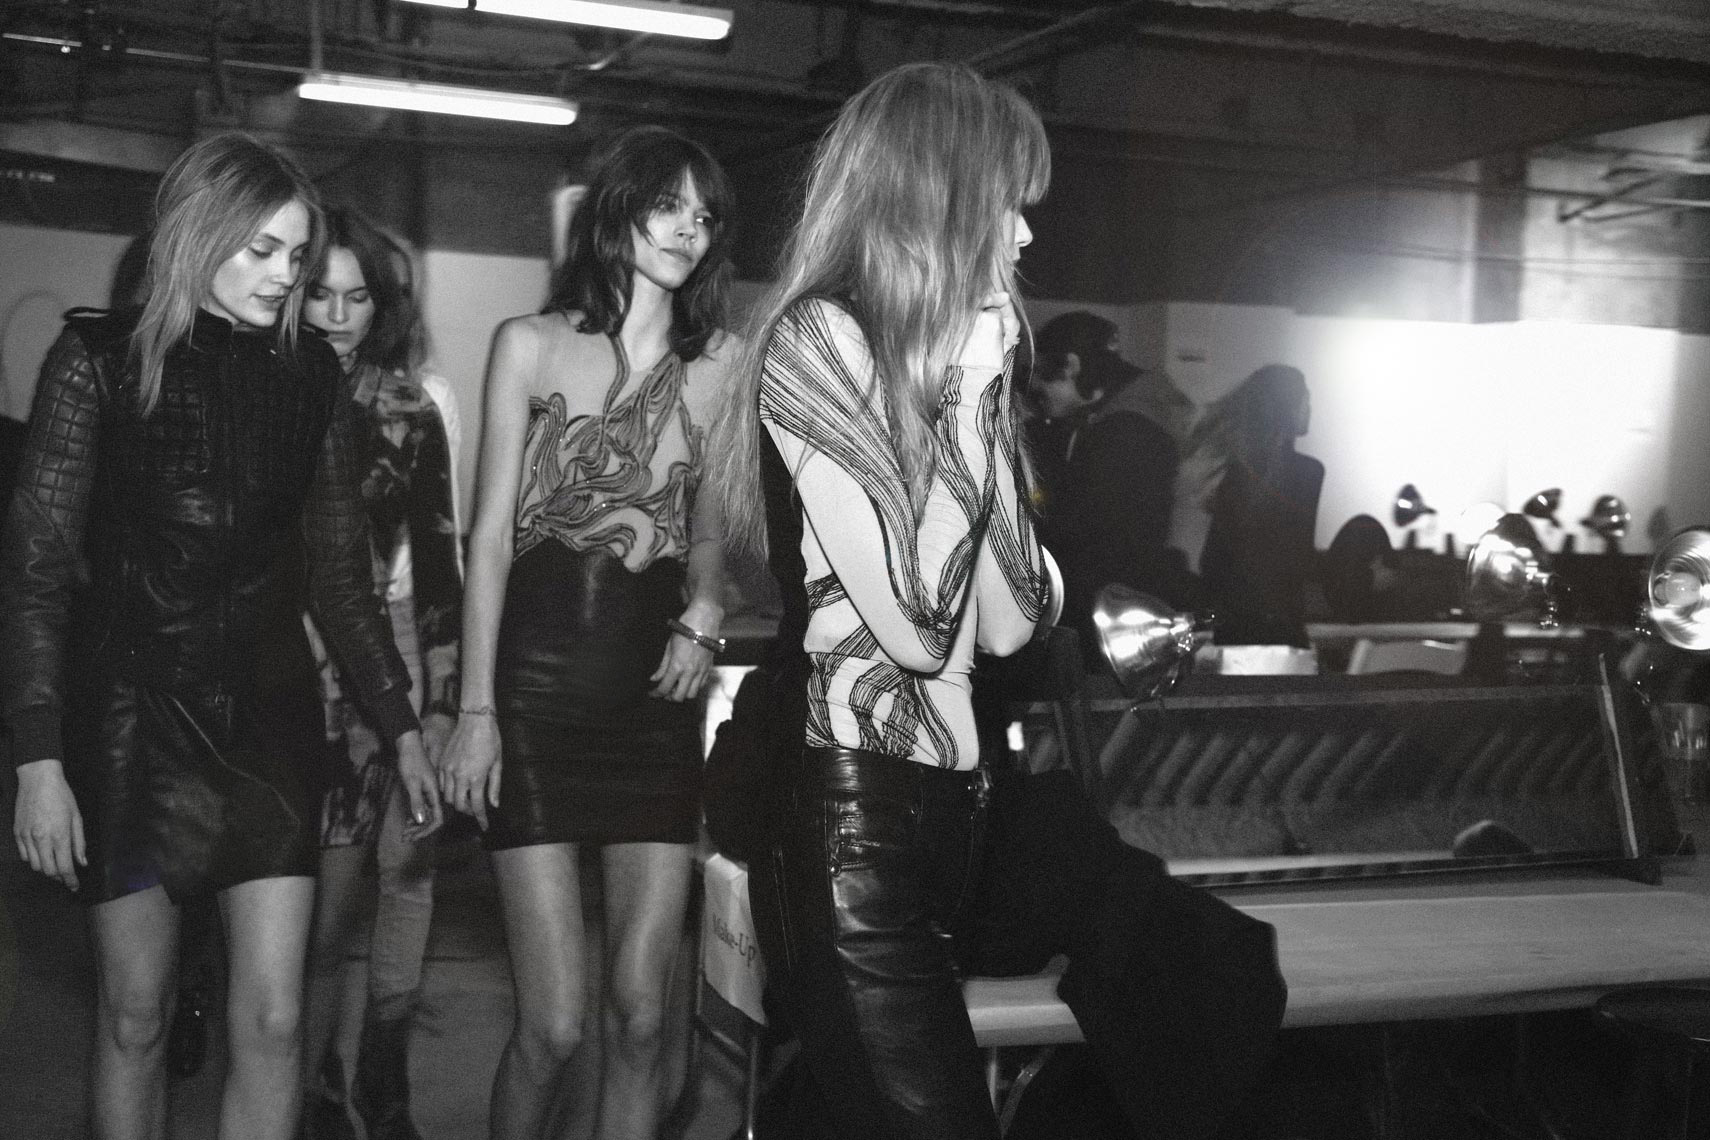 4-Kelly-Stuart-backstage-Diesel-FW10-1-b